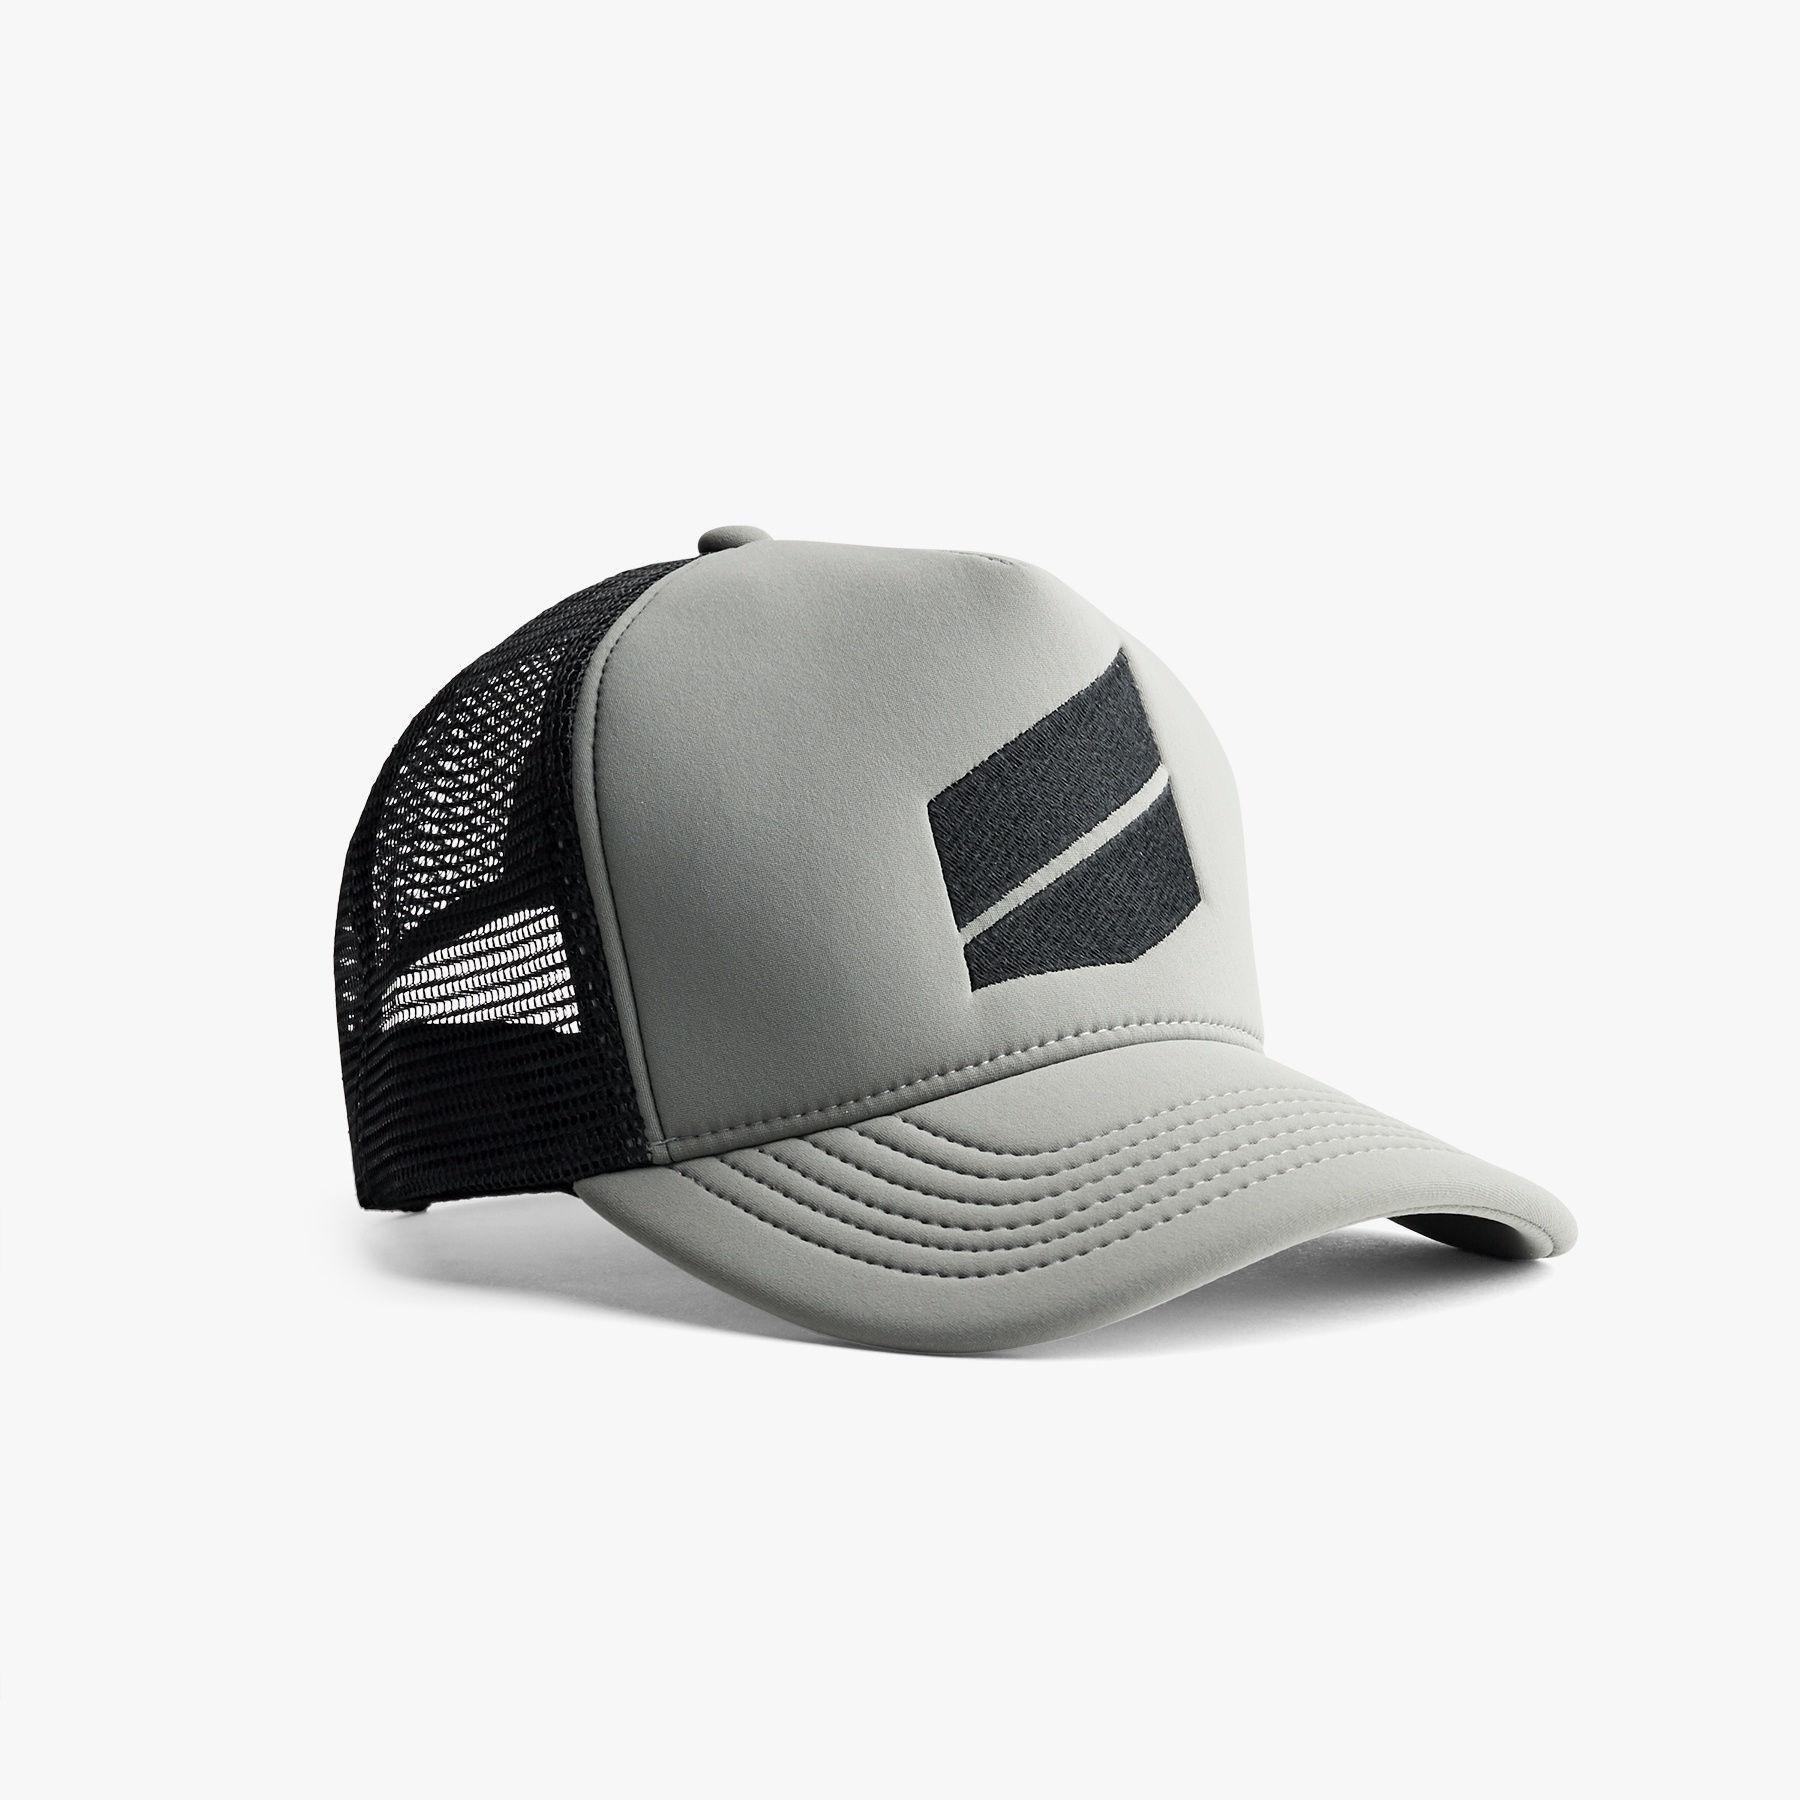 ... czech lyst james perse scuba graphic trucker hat online exclusive in  4ab8e 281a7 4d9719ab158f